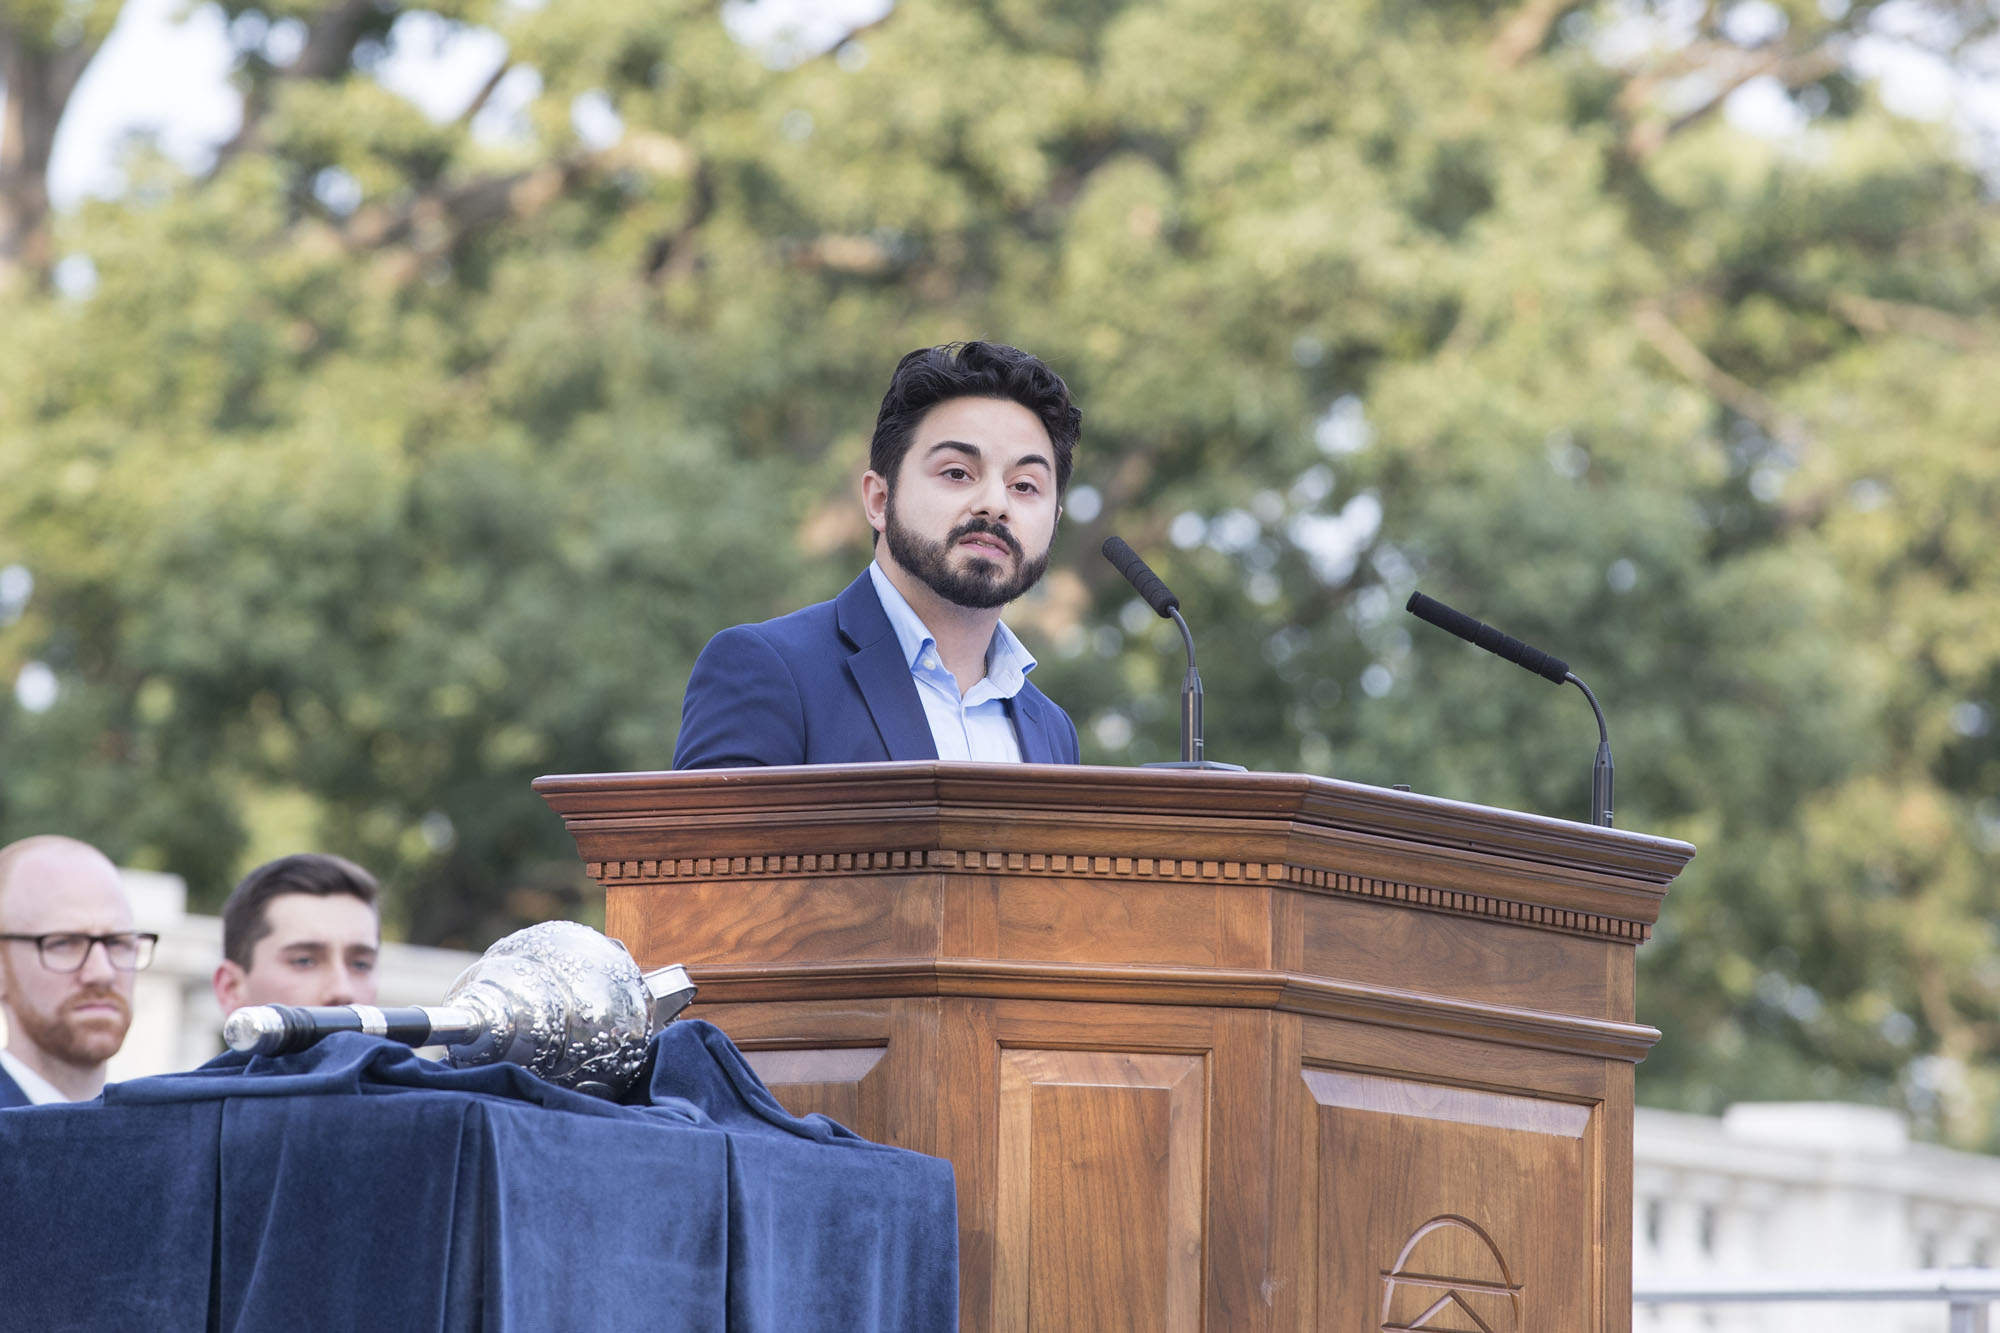 Student Council President Alex Cintron addressed the importance and the meaning of student self-governance at the University.